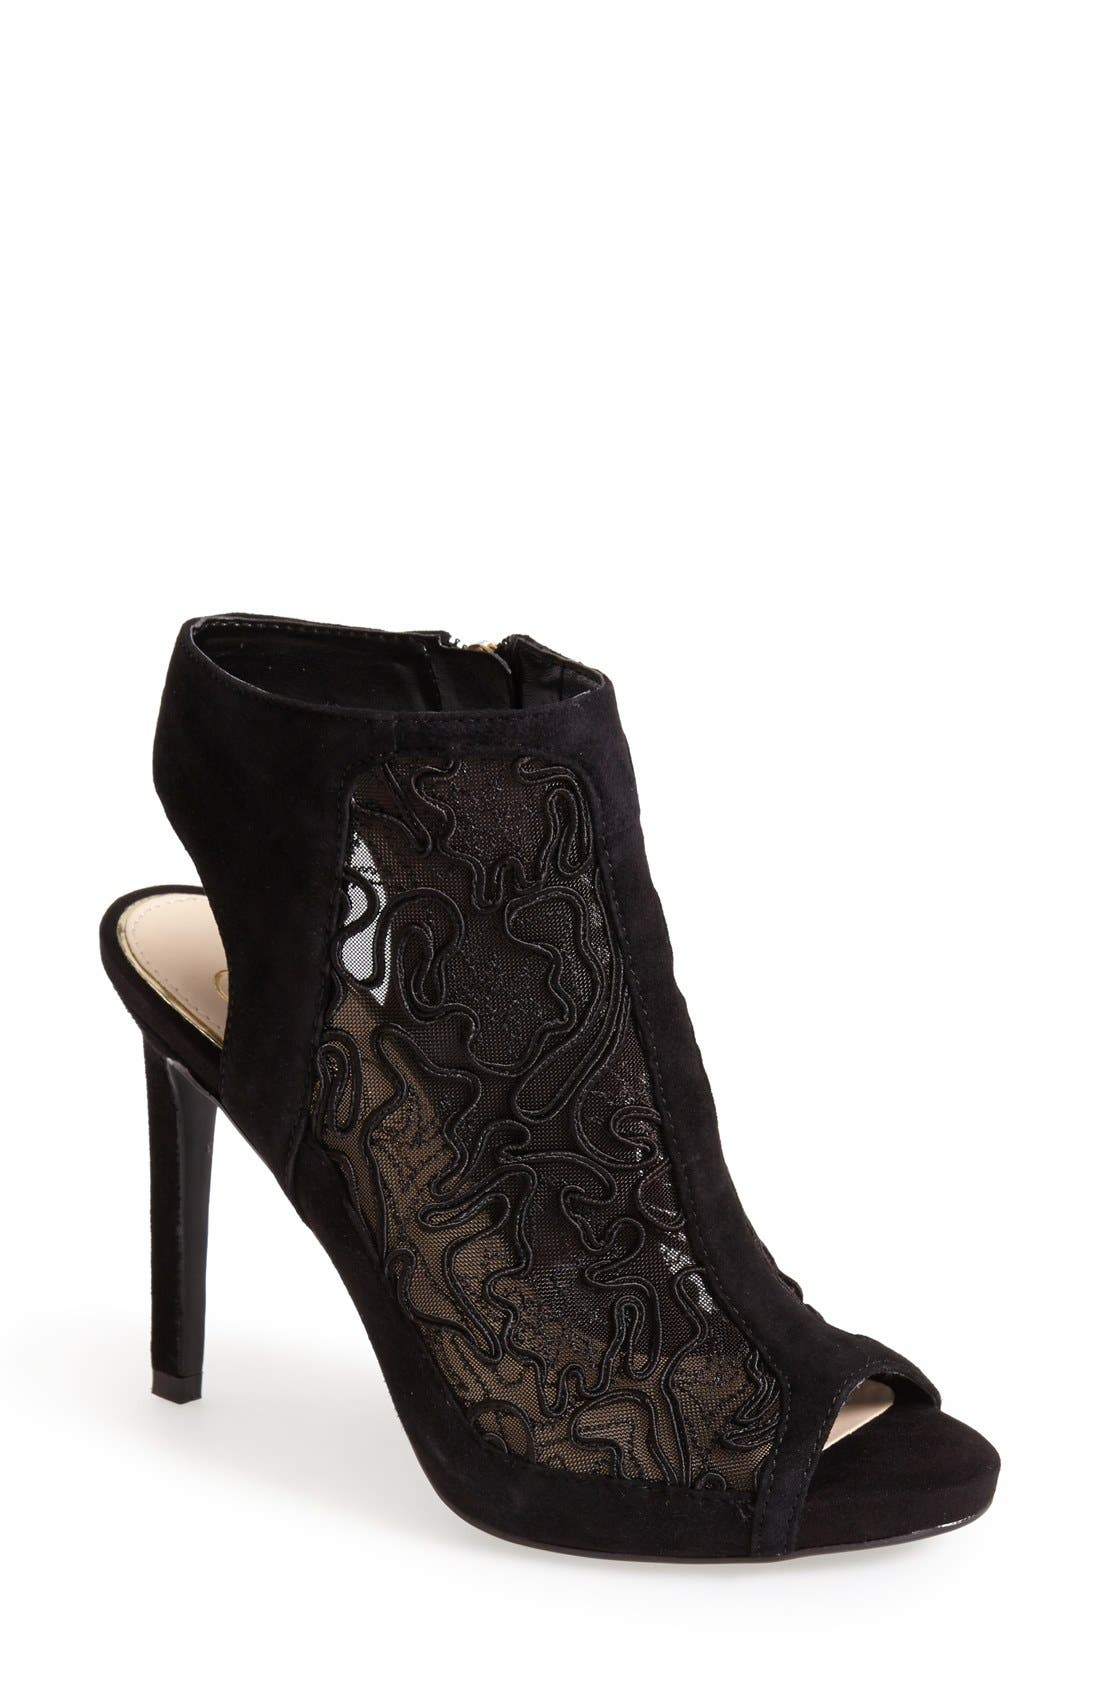 Alternate Image 1 Selected - Jessica Simpson 'Nynette' Open Toe Mesh Bootie (Women)